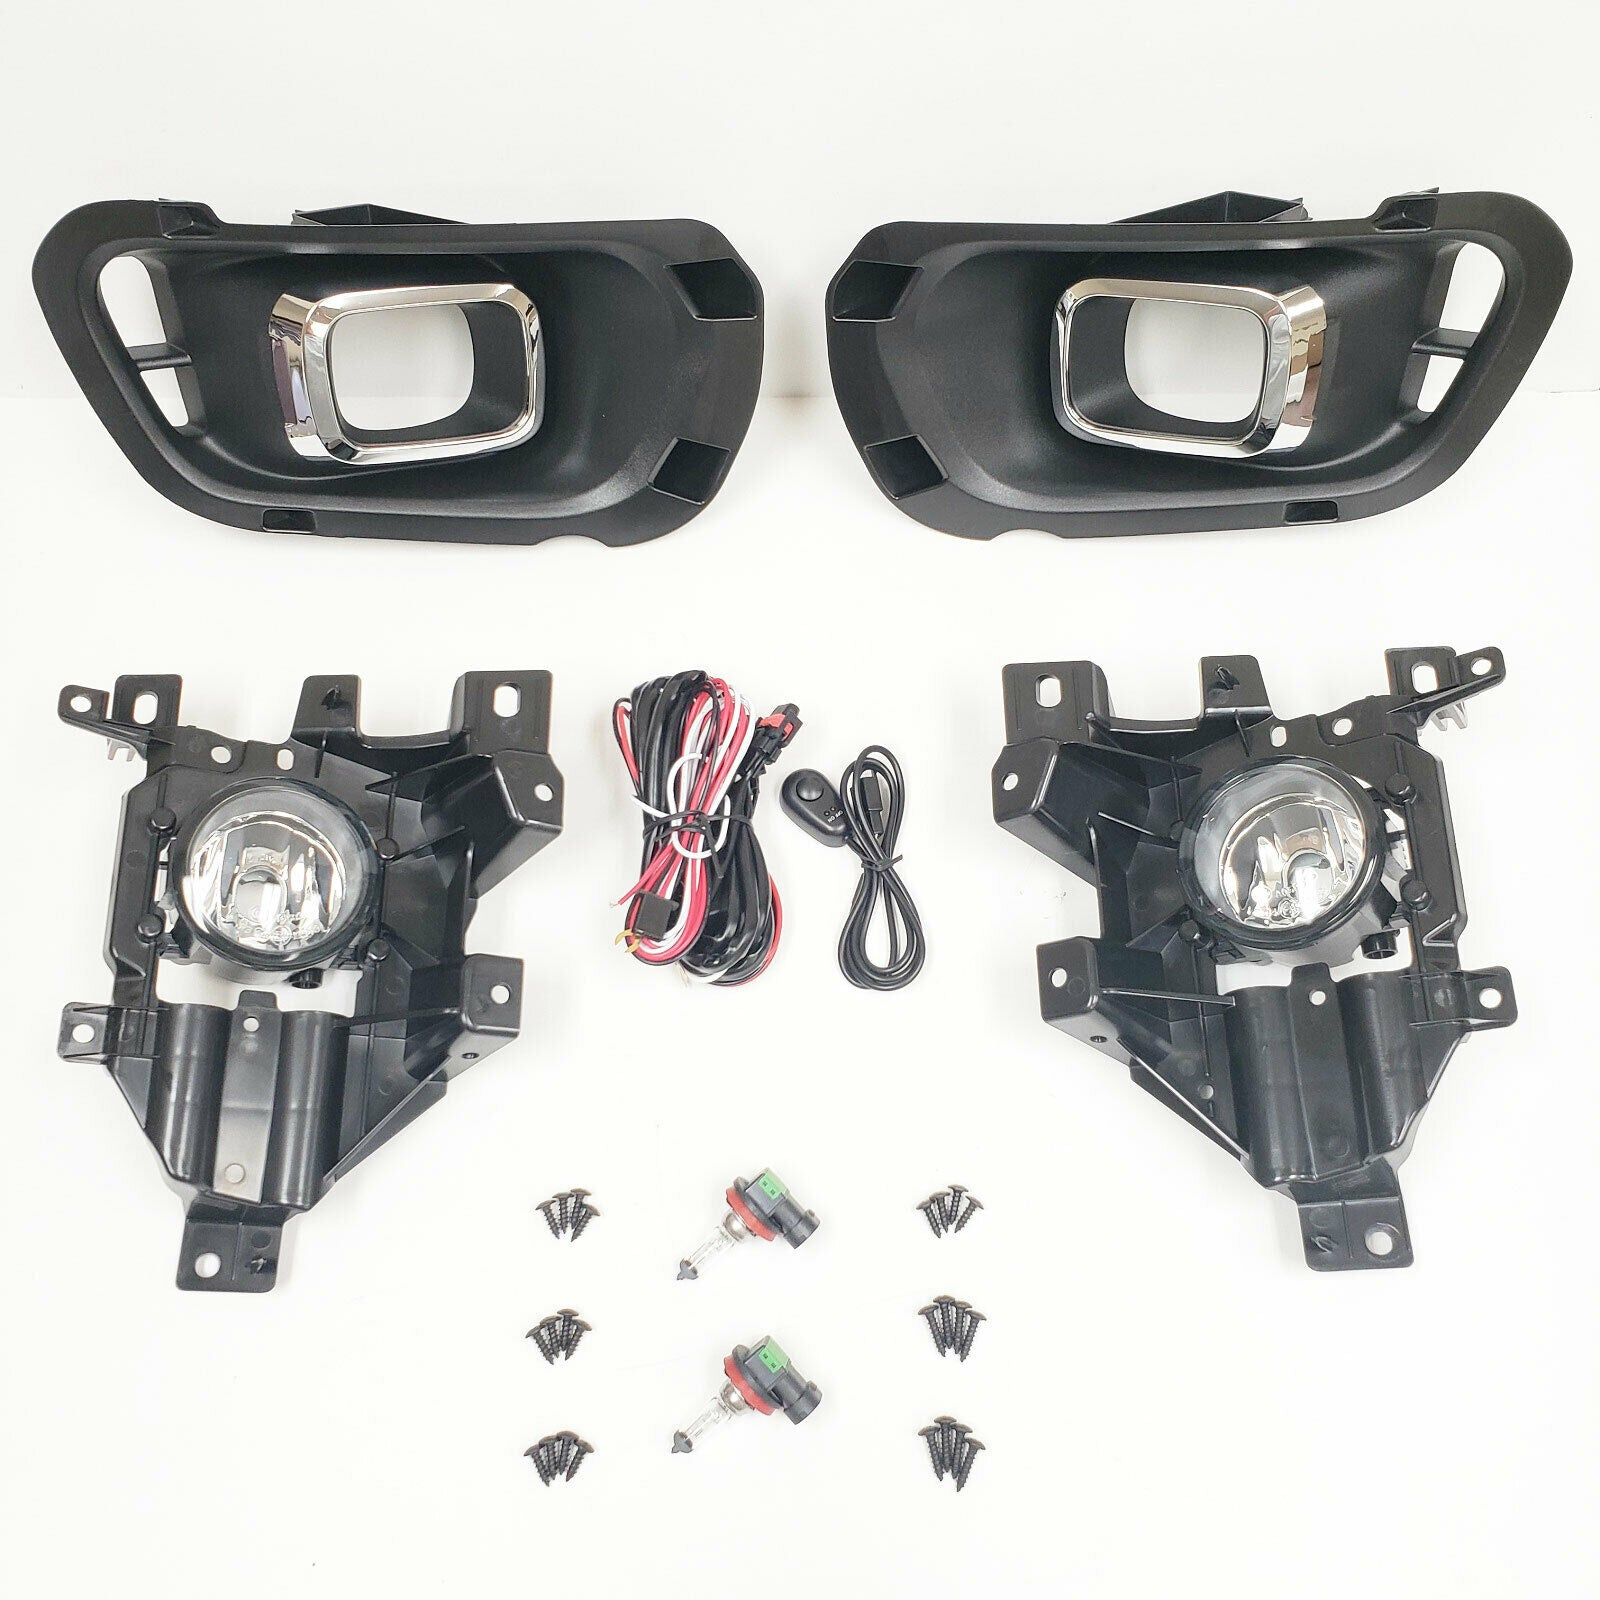 Clear Lens Fog Lights Assembly kit For 2019-21 Ford Ranger Chrome Trim | Ford Ranger Fog Light Switch Wiring |  | icarstool